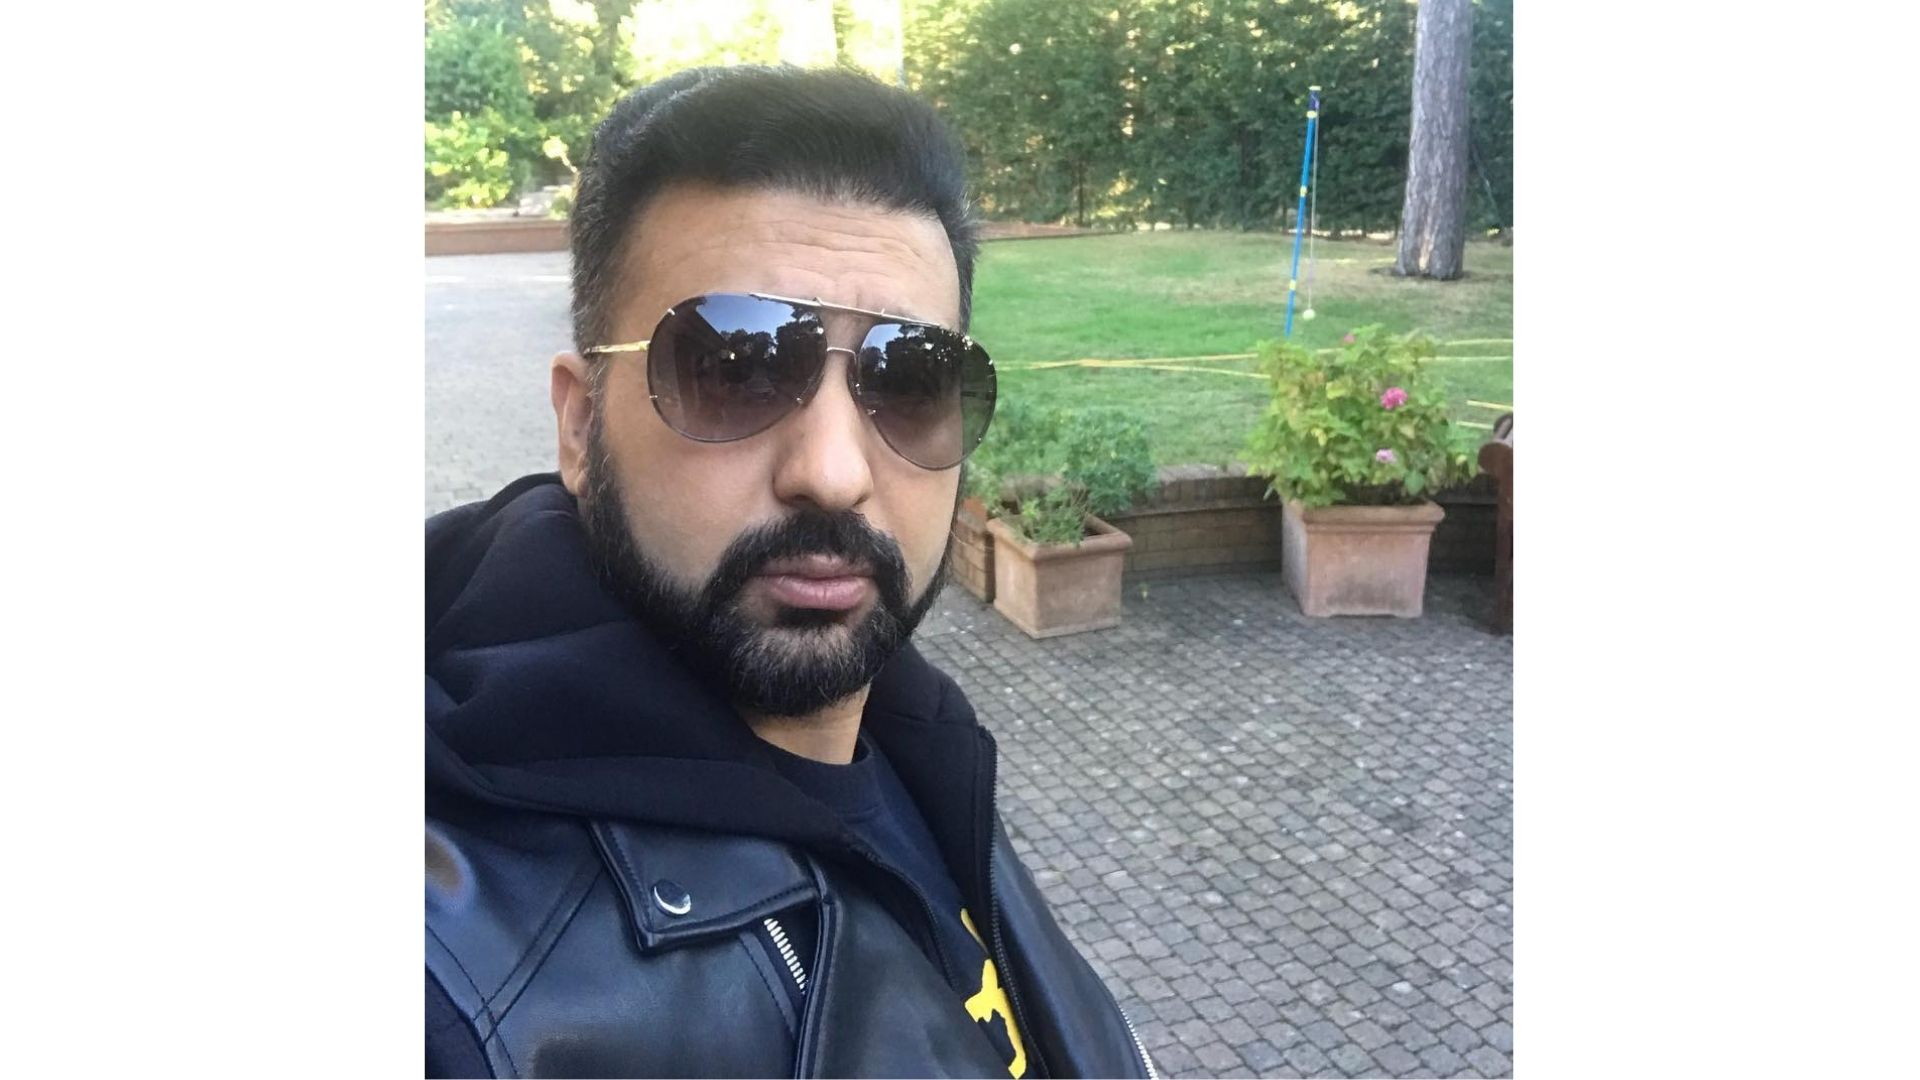 Raj Kundra Pornography Case: Shilpa Shetty's Husband Walks Out Of The Arthur Road Jail After Serving 2 Months' Sentence